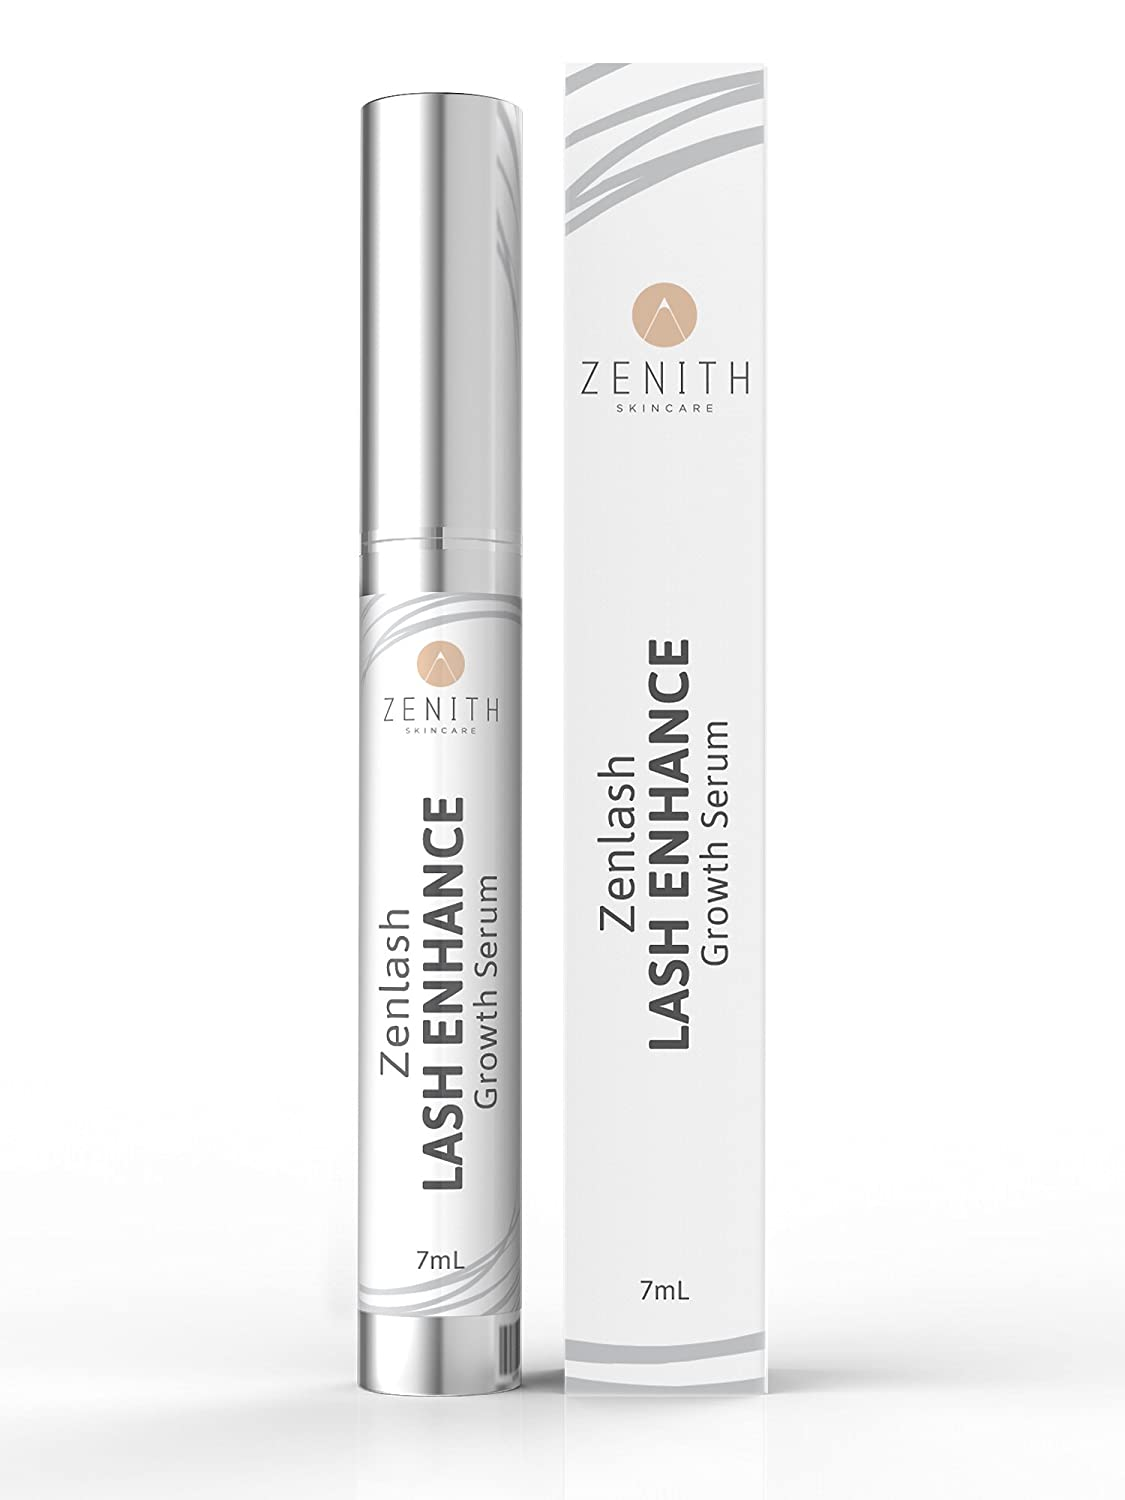 ZENLASH Eyelash growth serum eyelash growth products best eyelash growth serum longer stronger thicker eyelashes for fuller lashes large 7ml bottle-Lifetime peace of mind guarantee